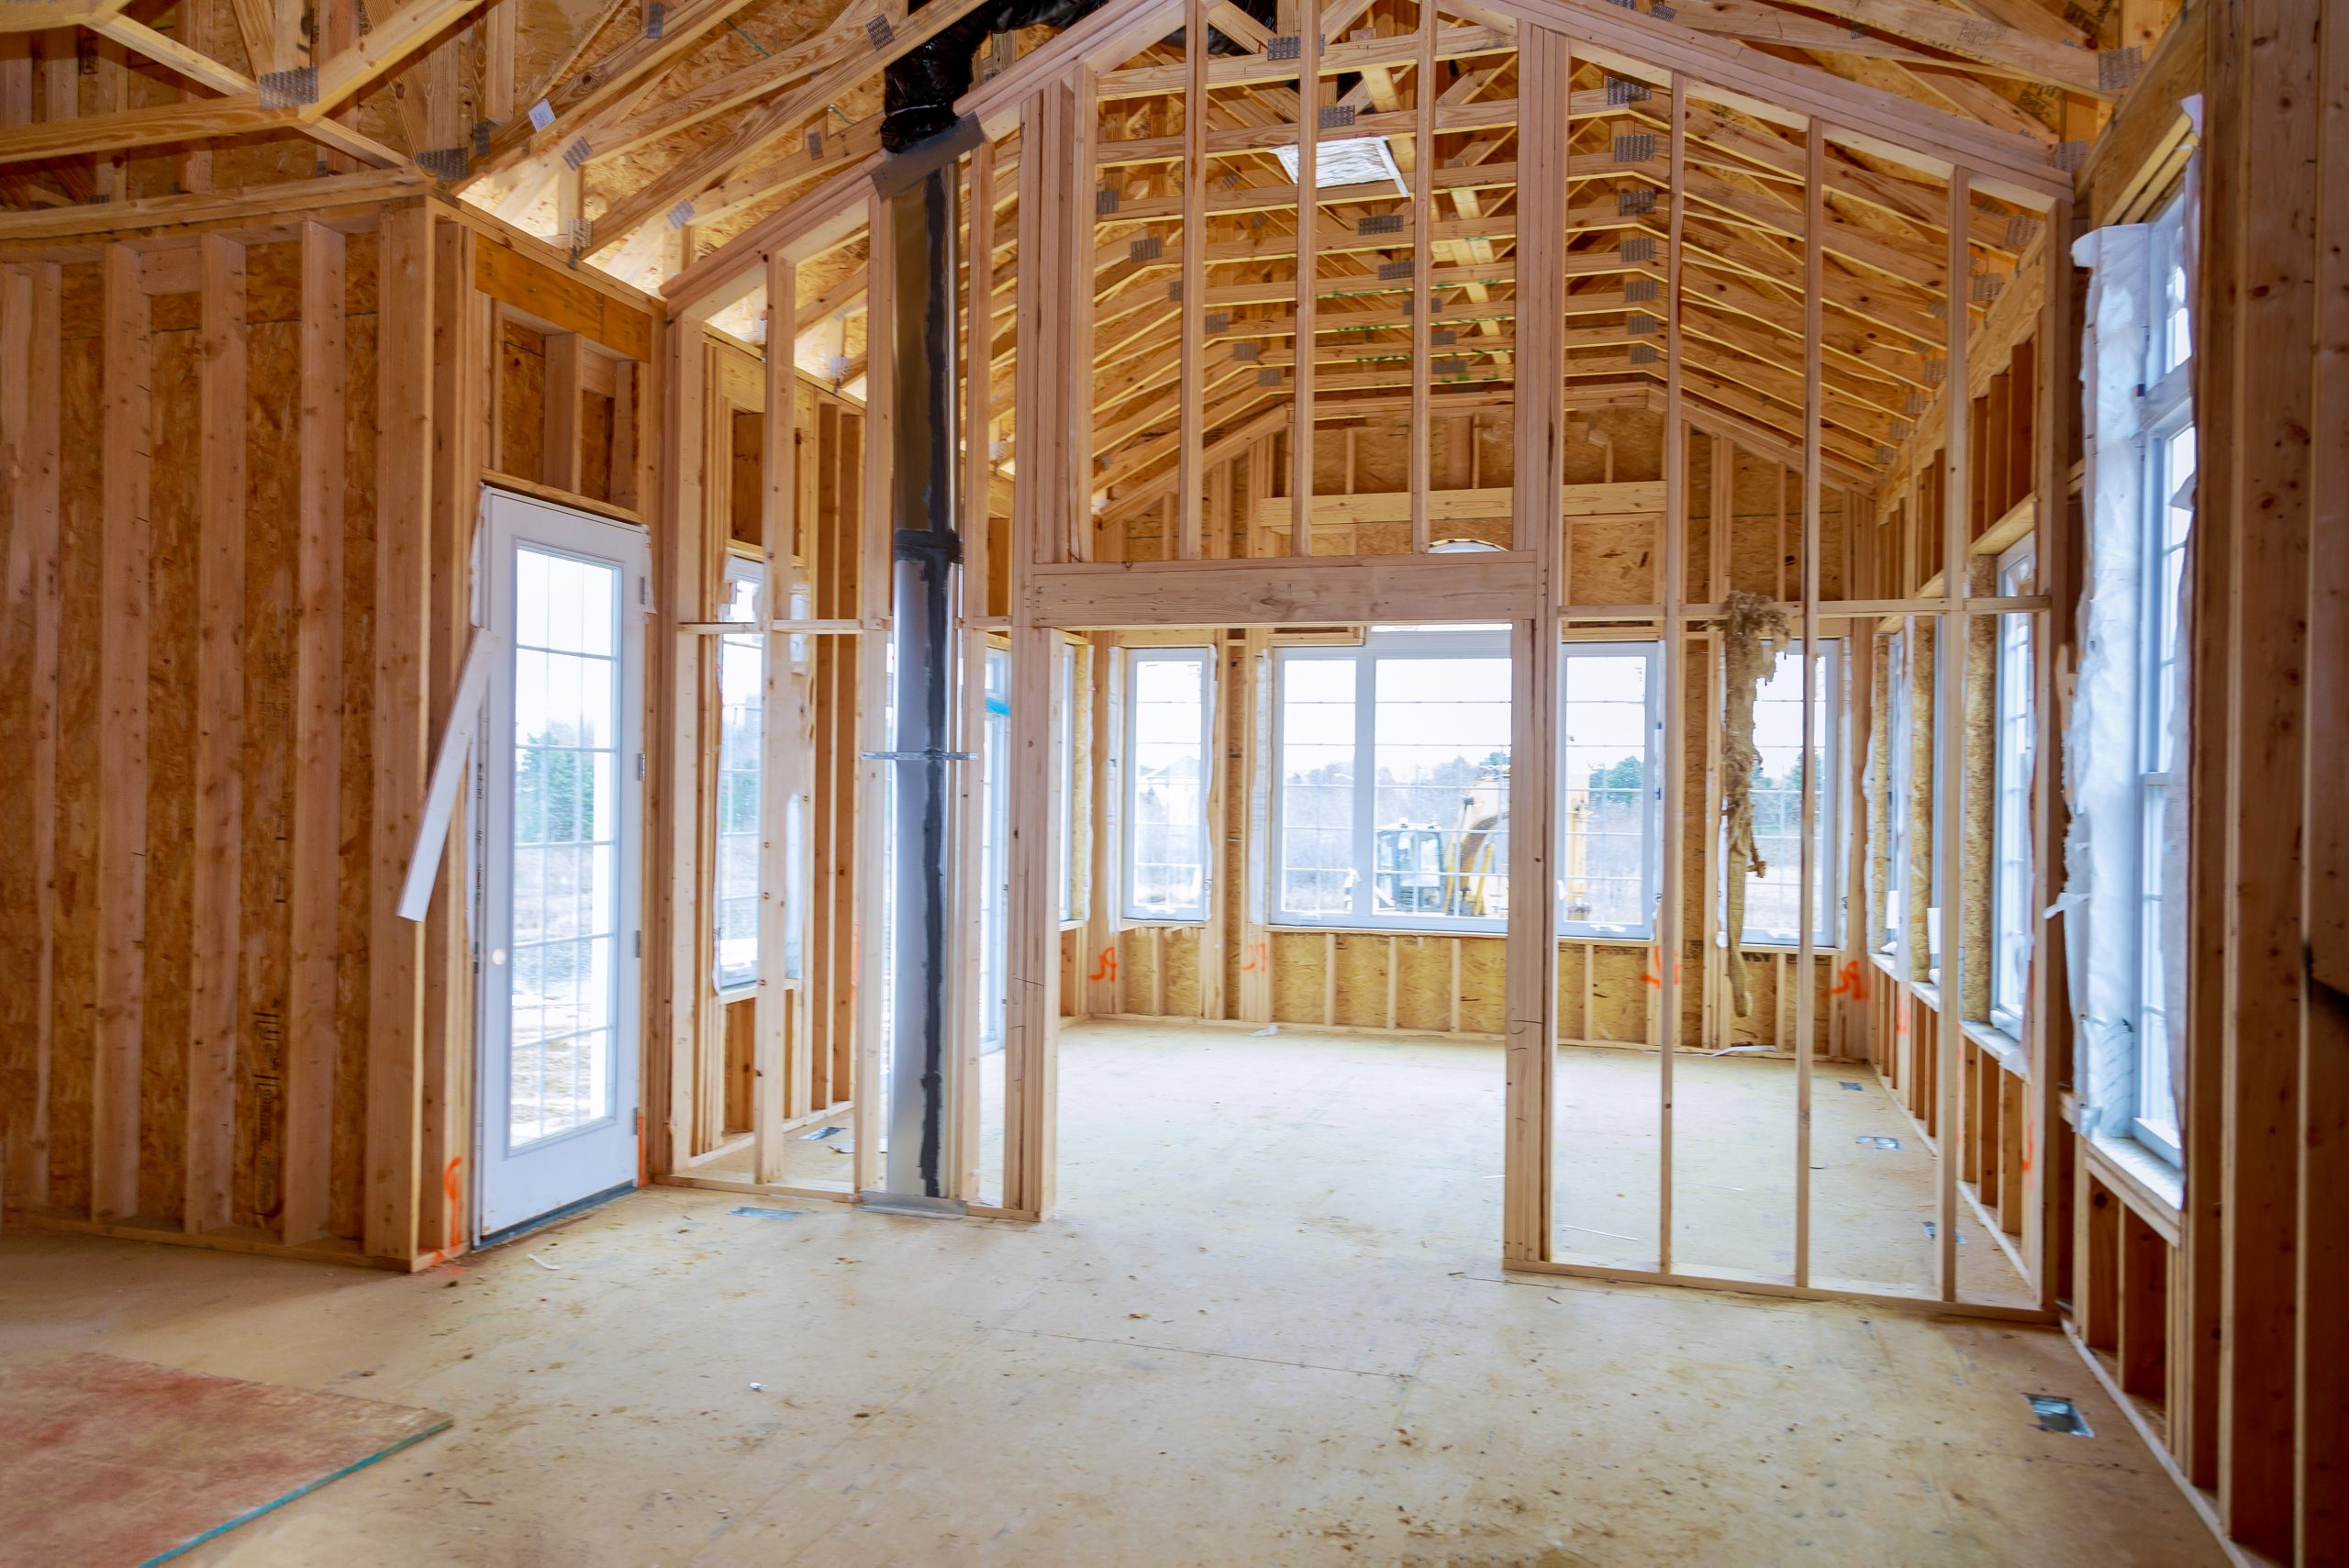 Interior,View,Of,A,House,Under,Construction,Home,Framing